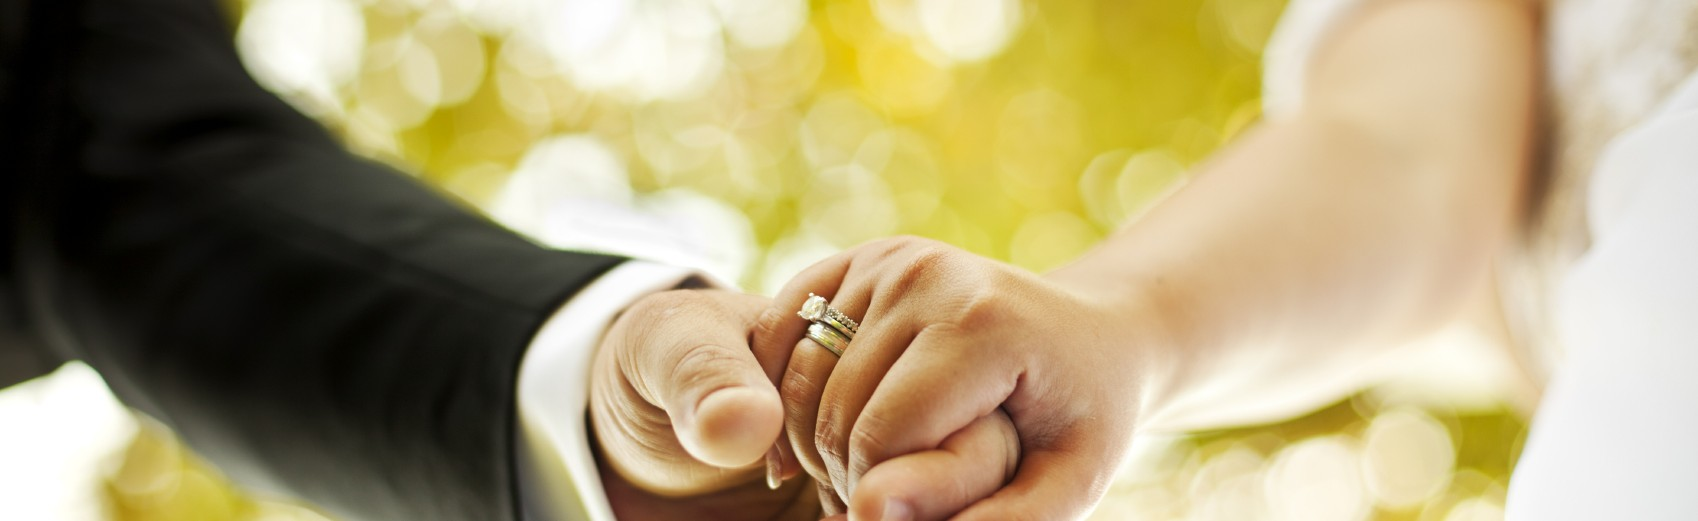 130 Visa     Petitions for the Immigrating Spouse of an American    Wedding Rings Holding Hands